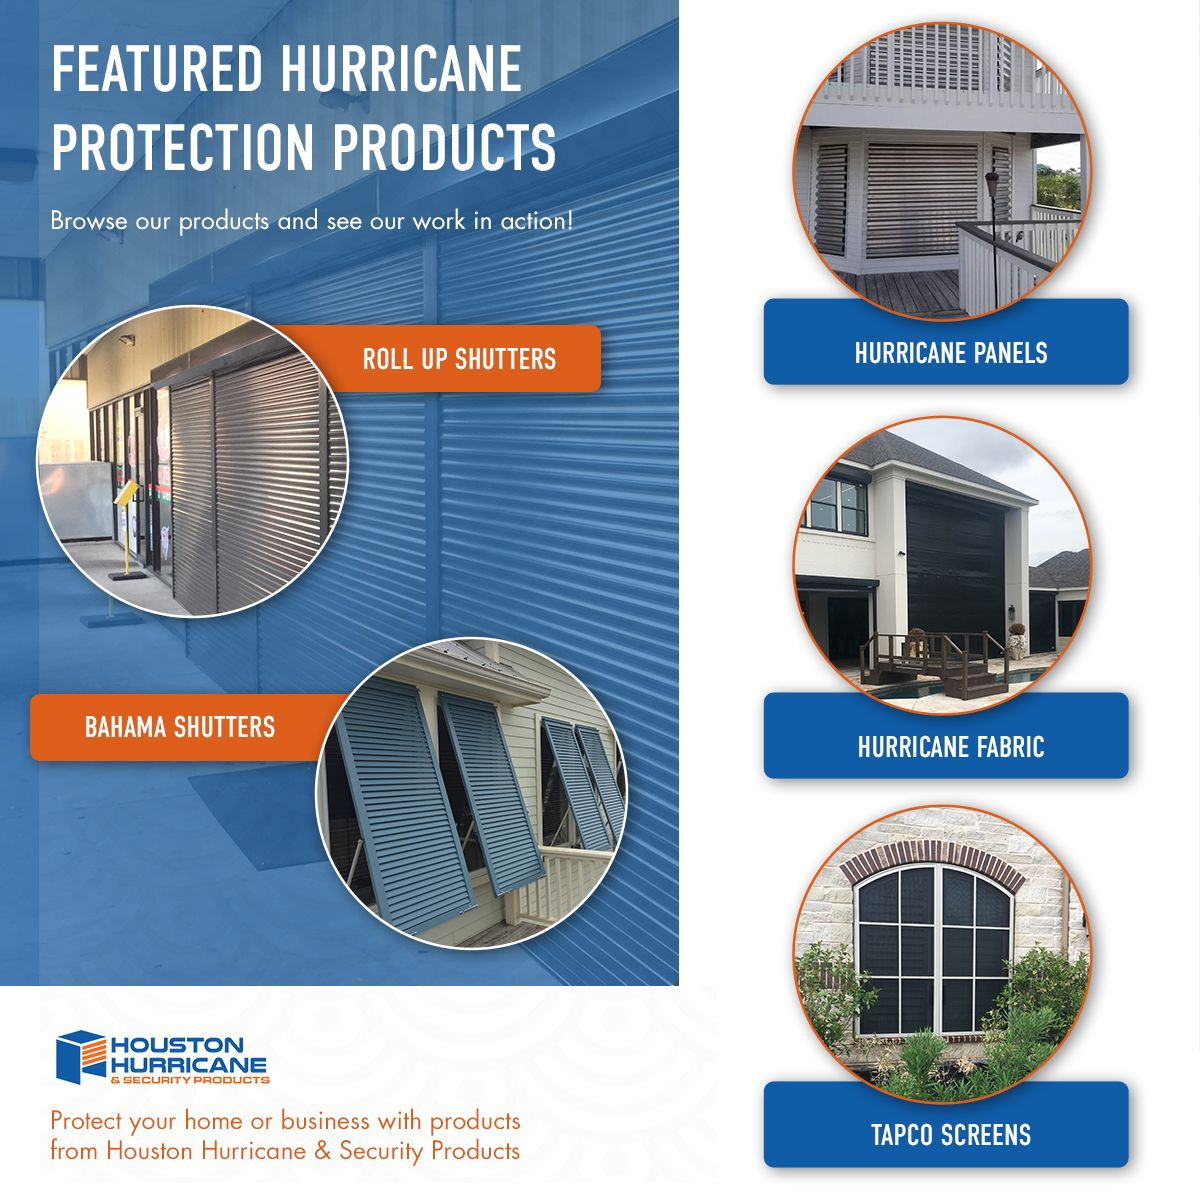 Featured Hurricane Protection Products